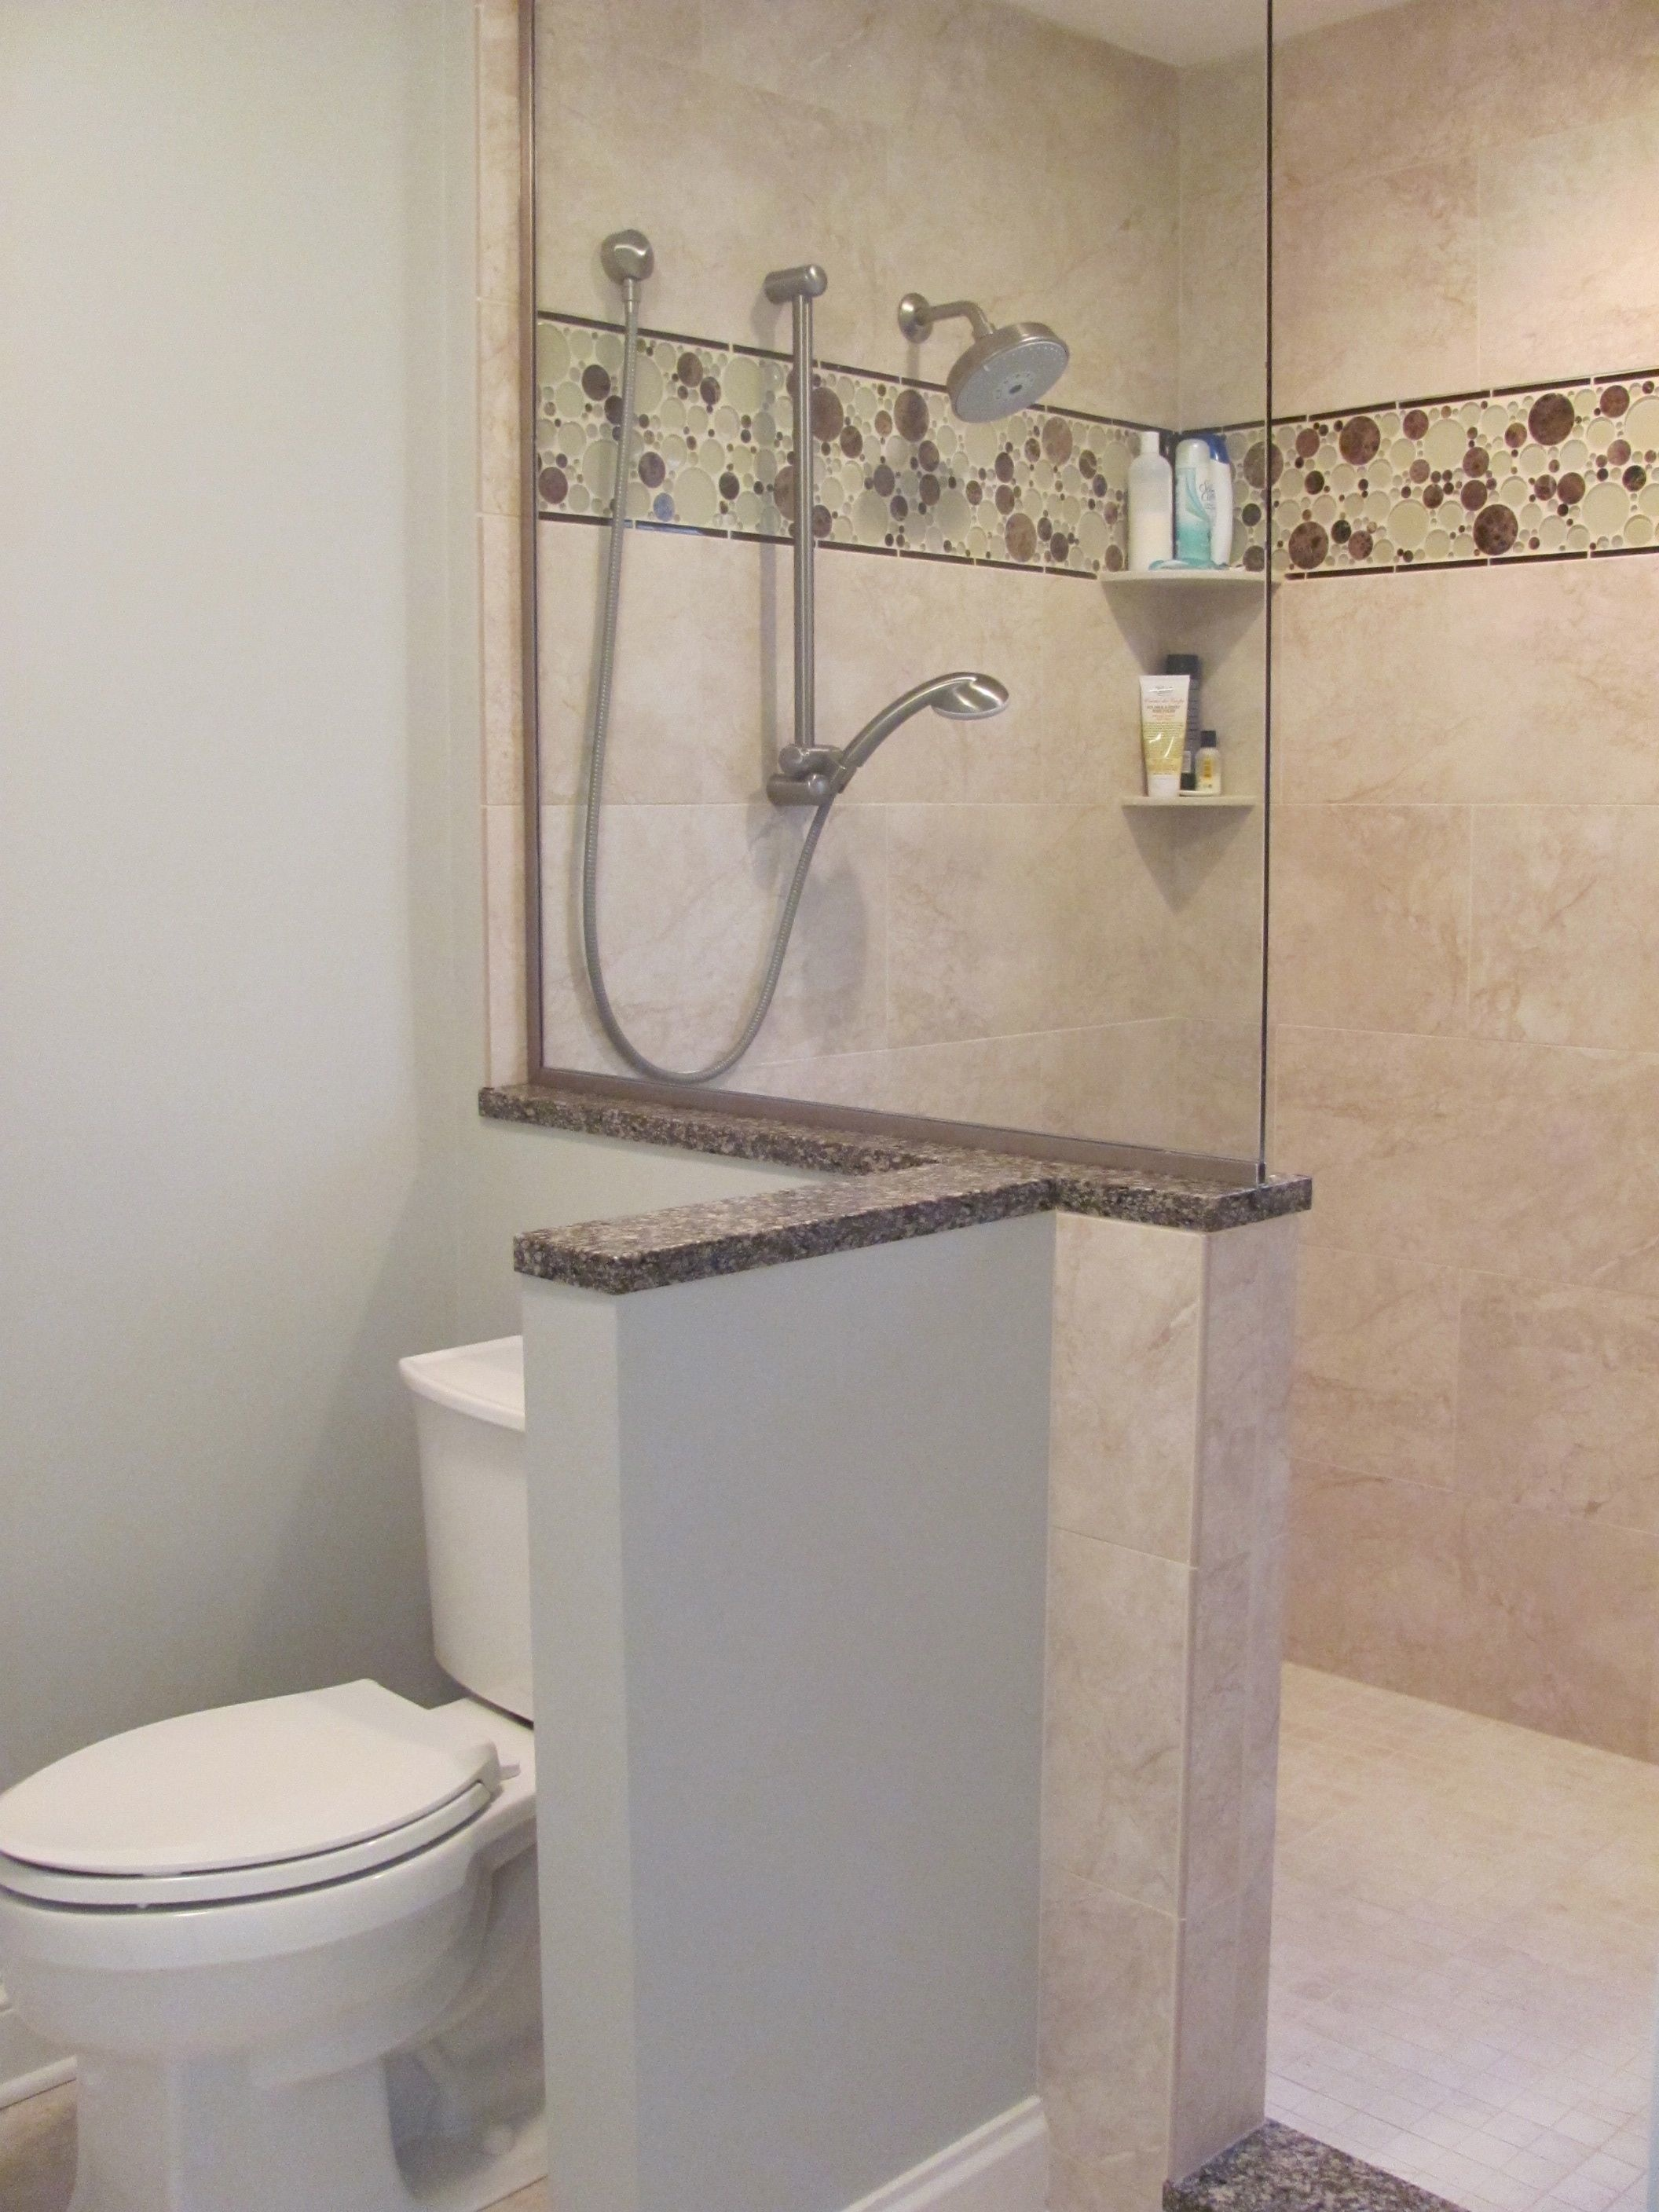 Combined shower & toilet area create enlarged shower & privacy.